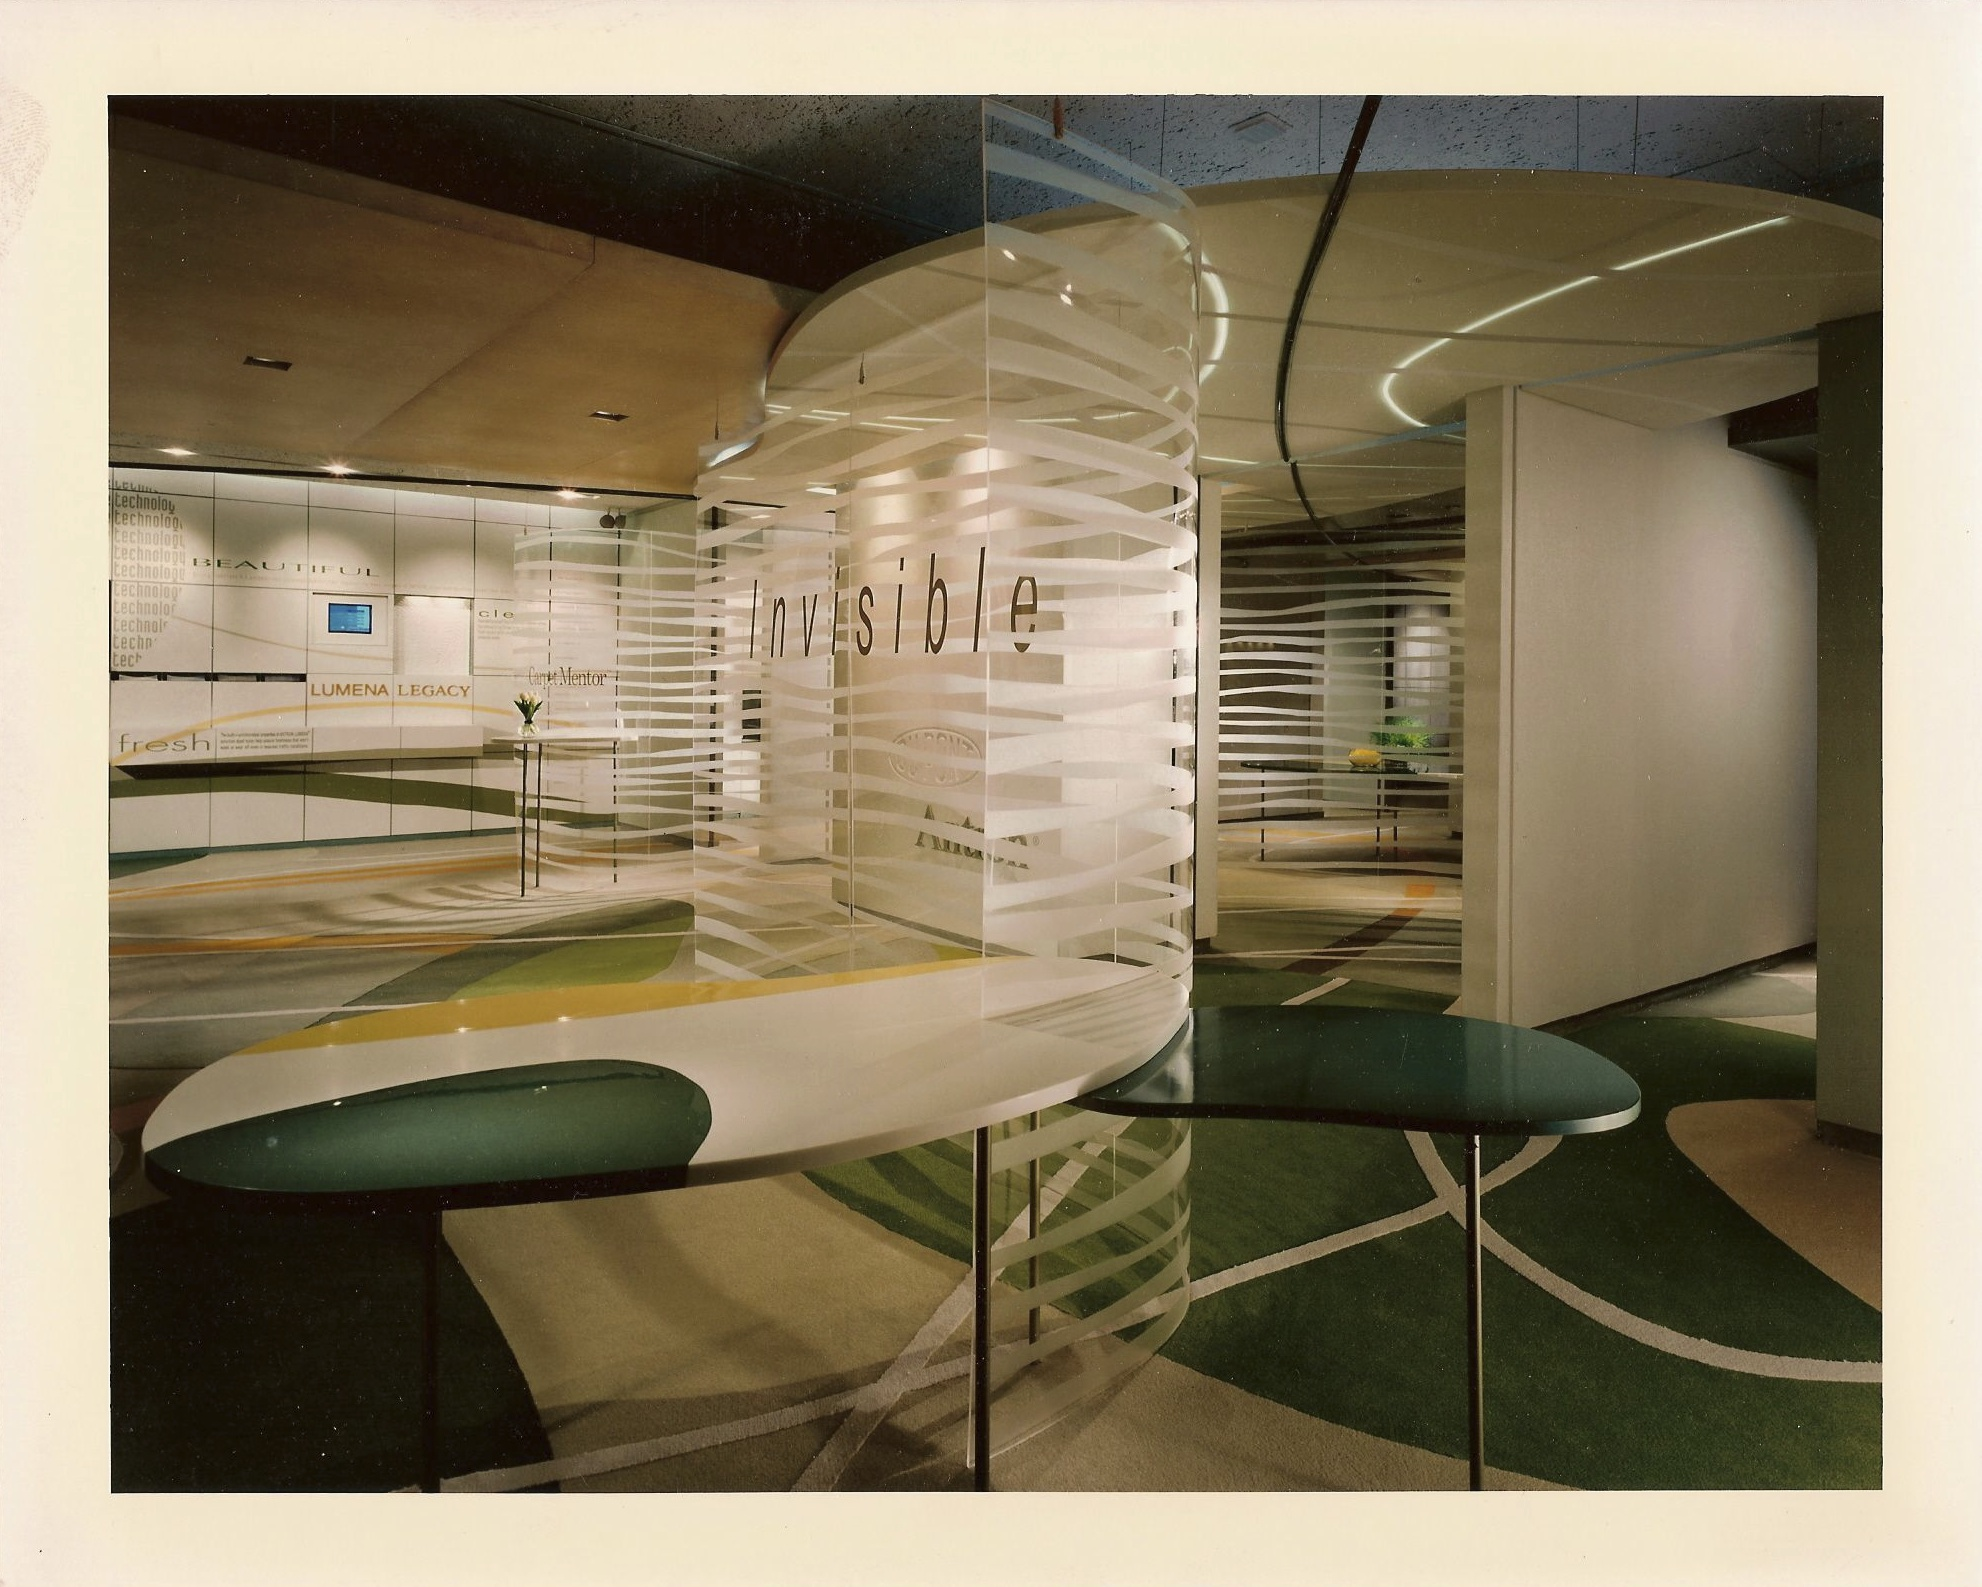 Custom millwork with automotive finishing and Corian inlays, formed acrylic work with applied graphics, and flooring inlays by Ndio.